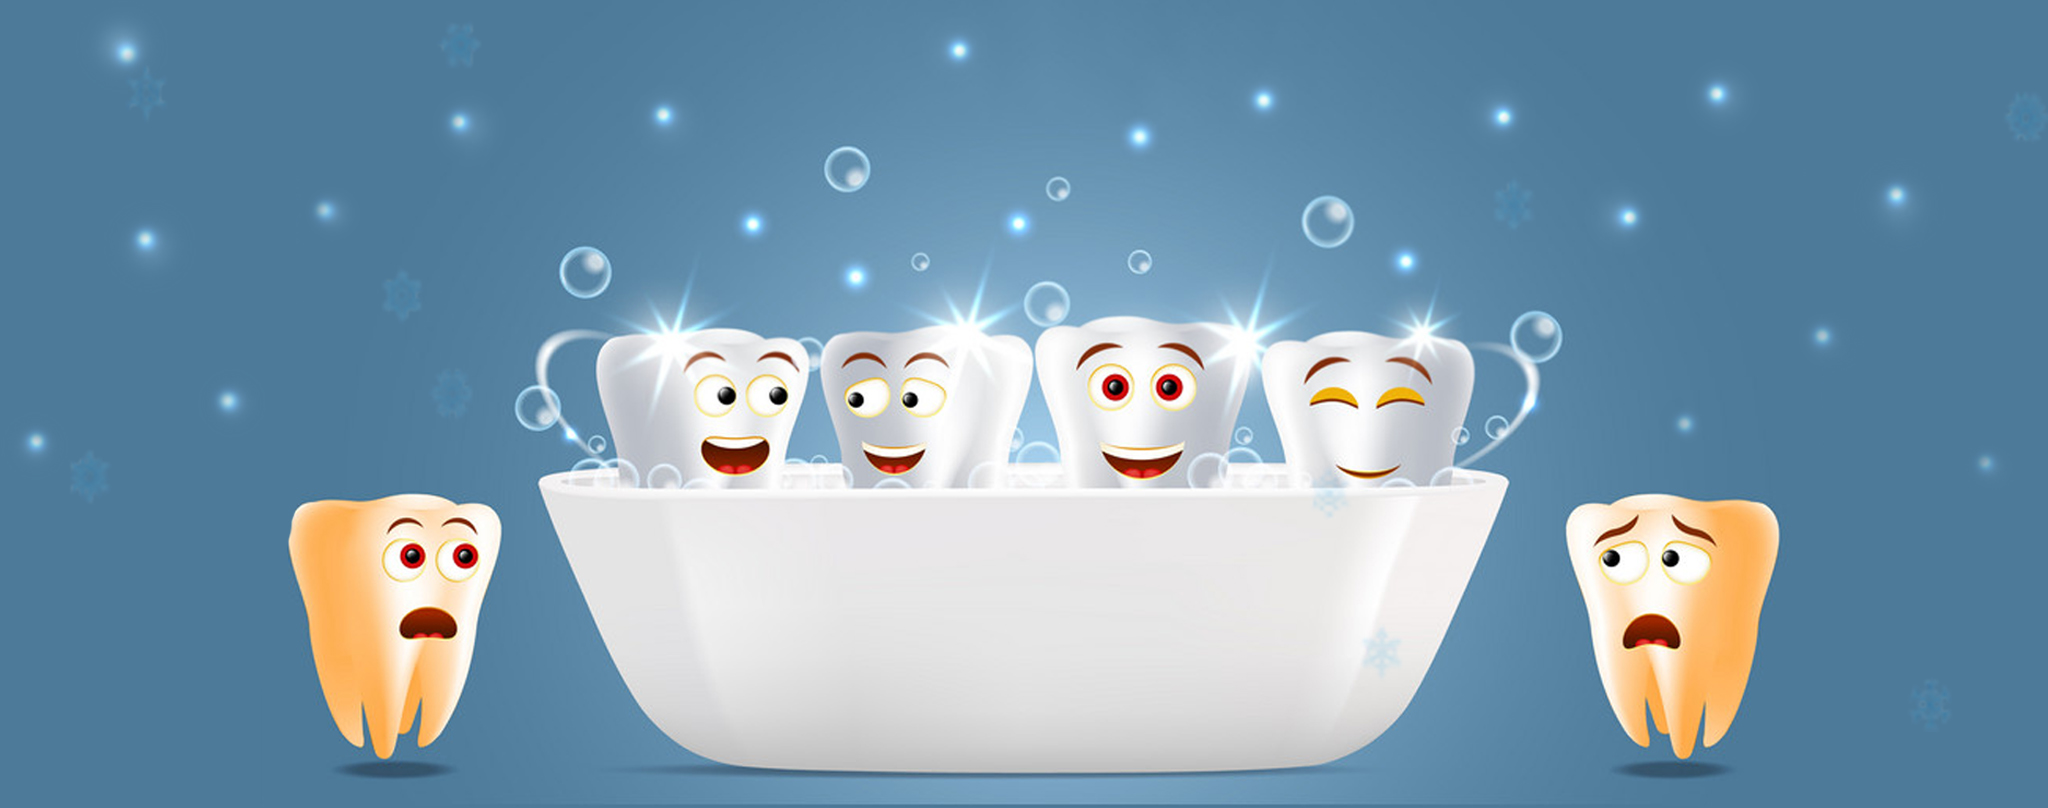 5 Tips To Get Snow White Teeth With Vithoba Oral Care Products.